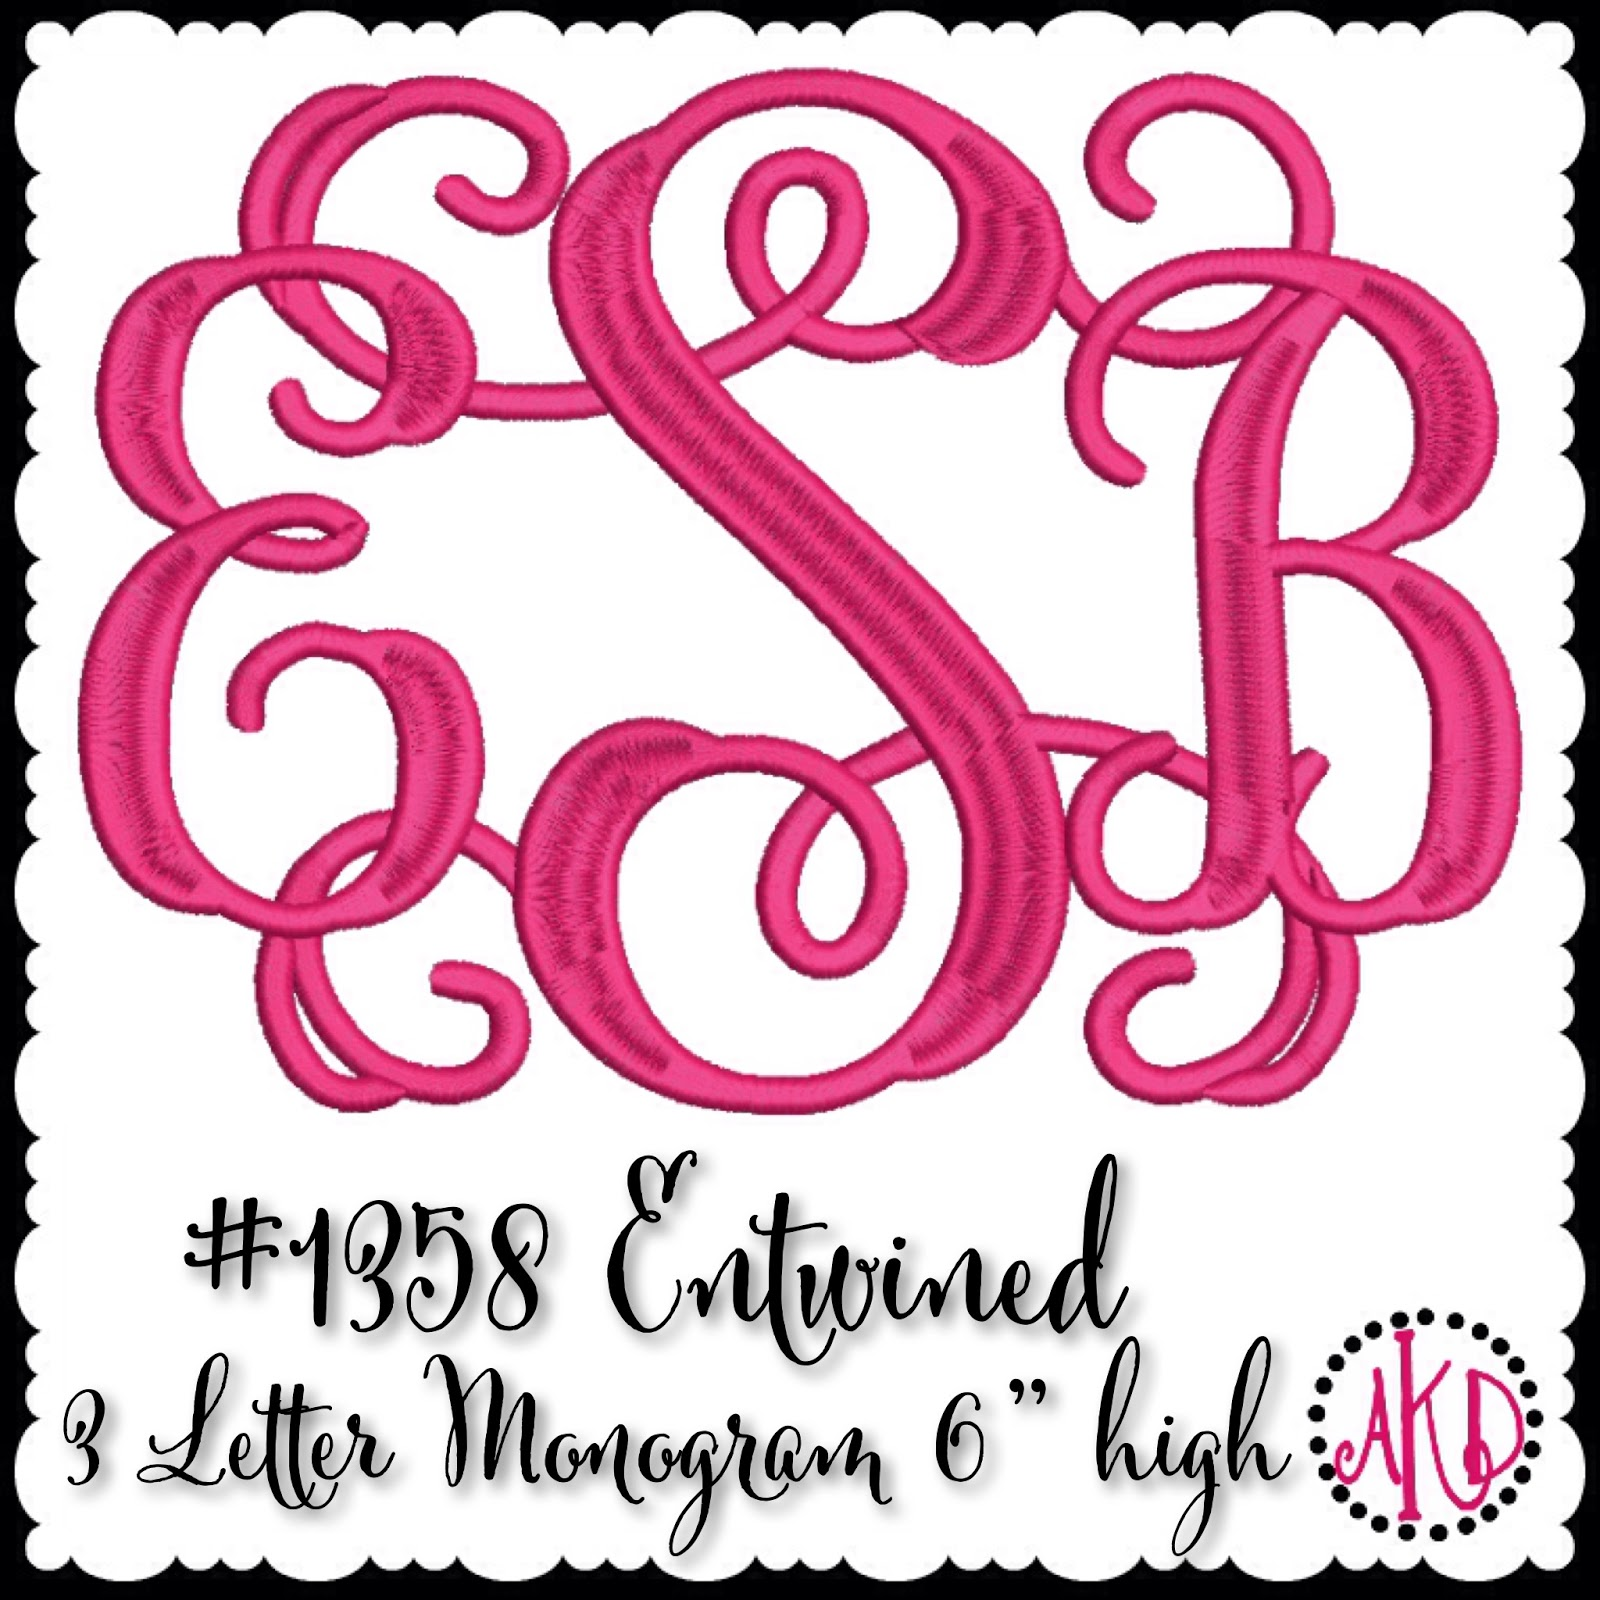 http://www.akdesignsboutique.com/no-1358-entwined-3-letter-monogram-machine-embroidery-designs-6-inch-high/